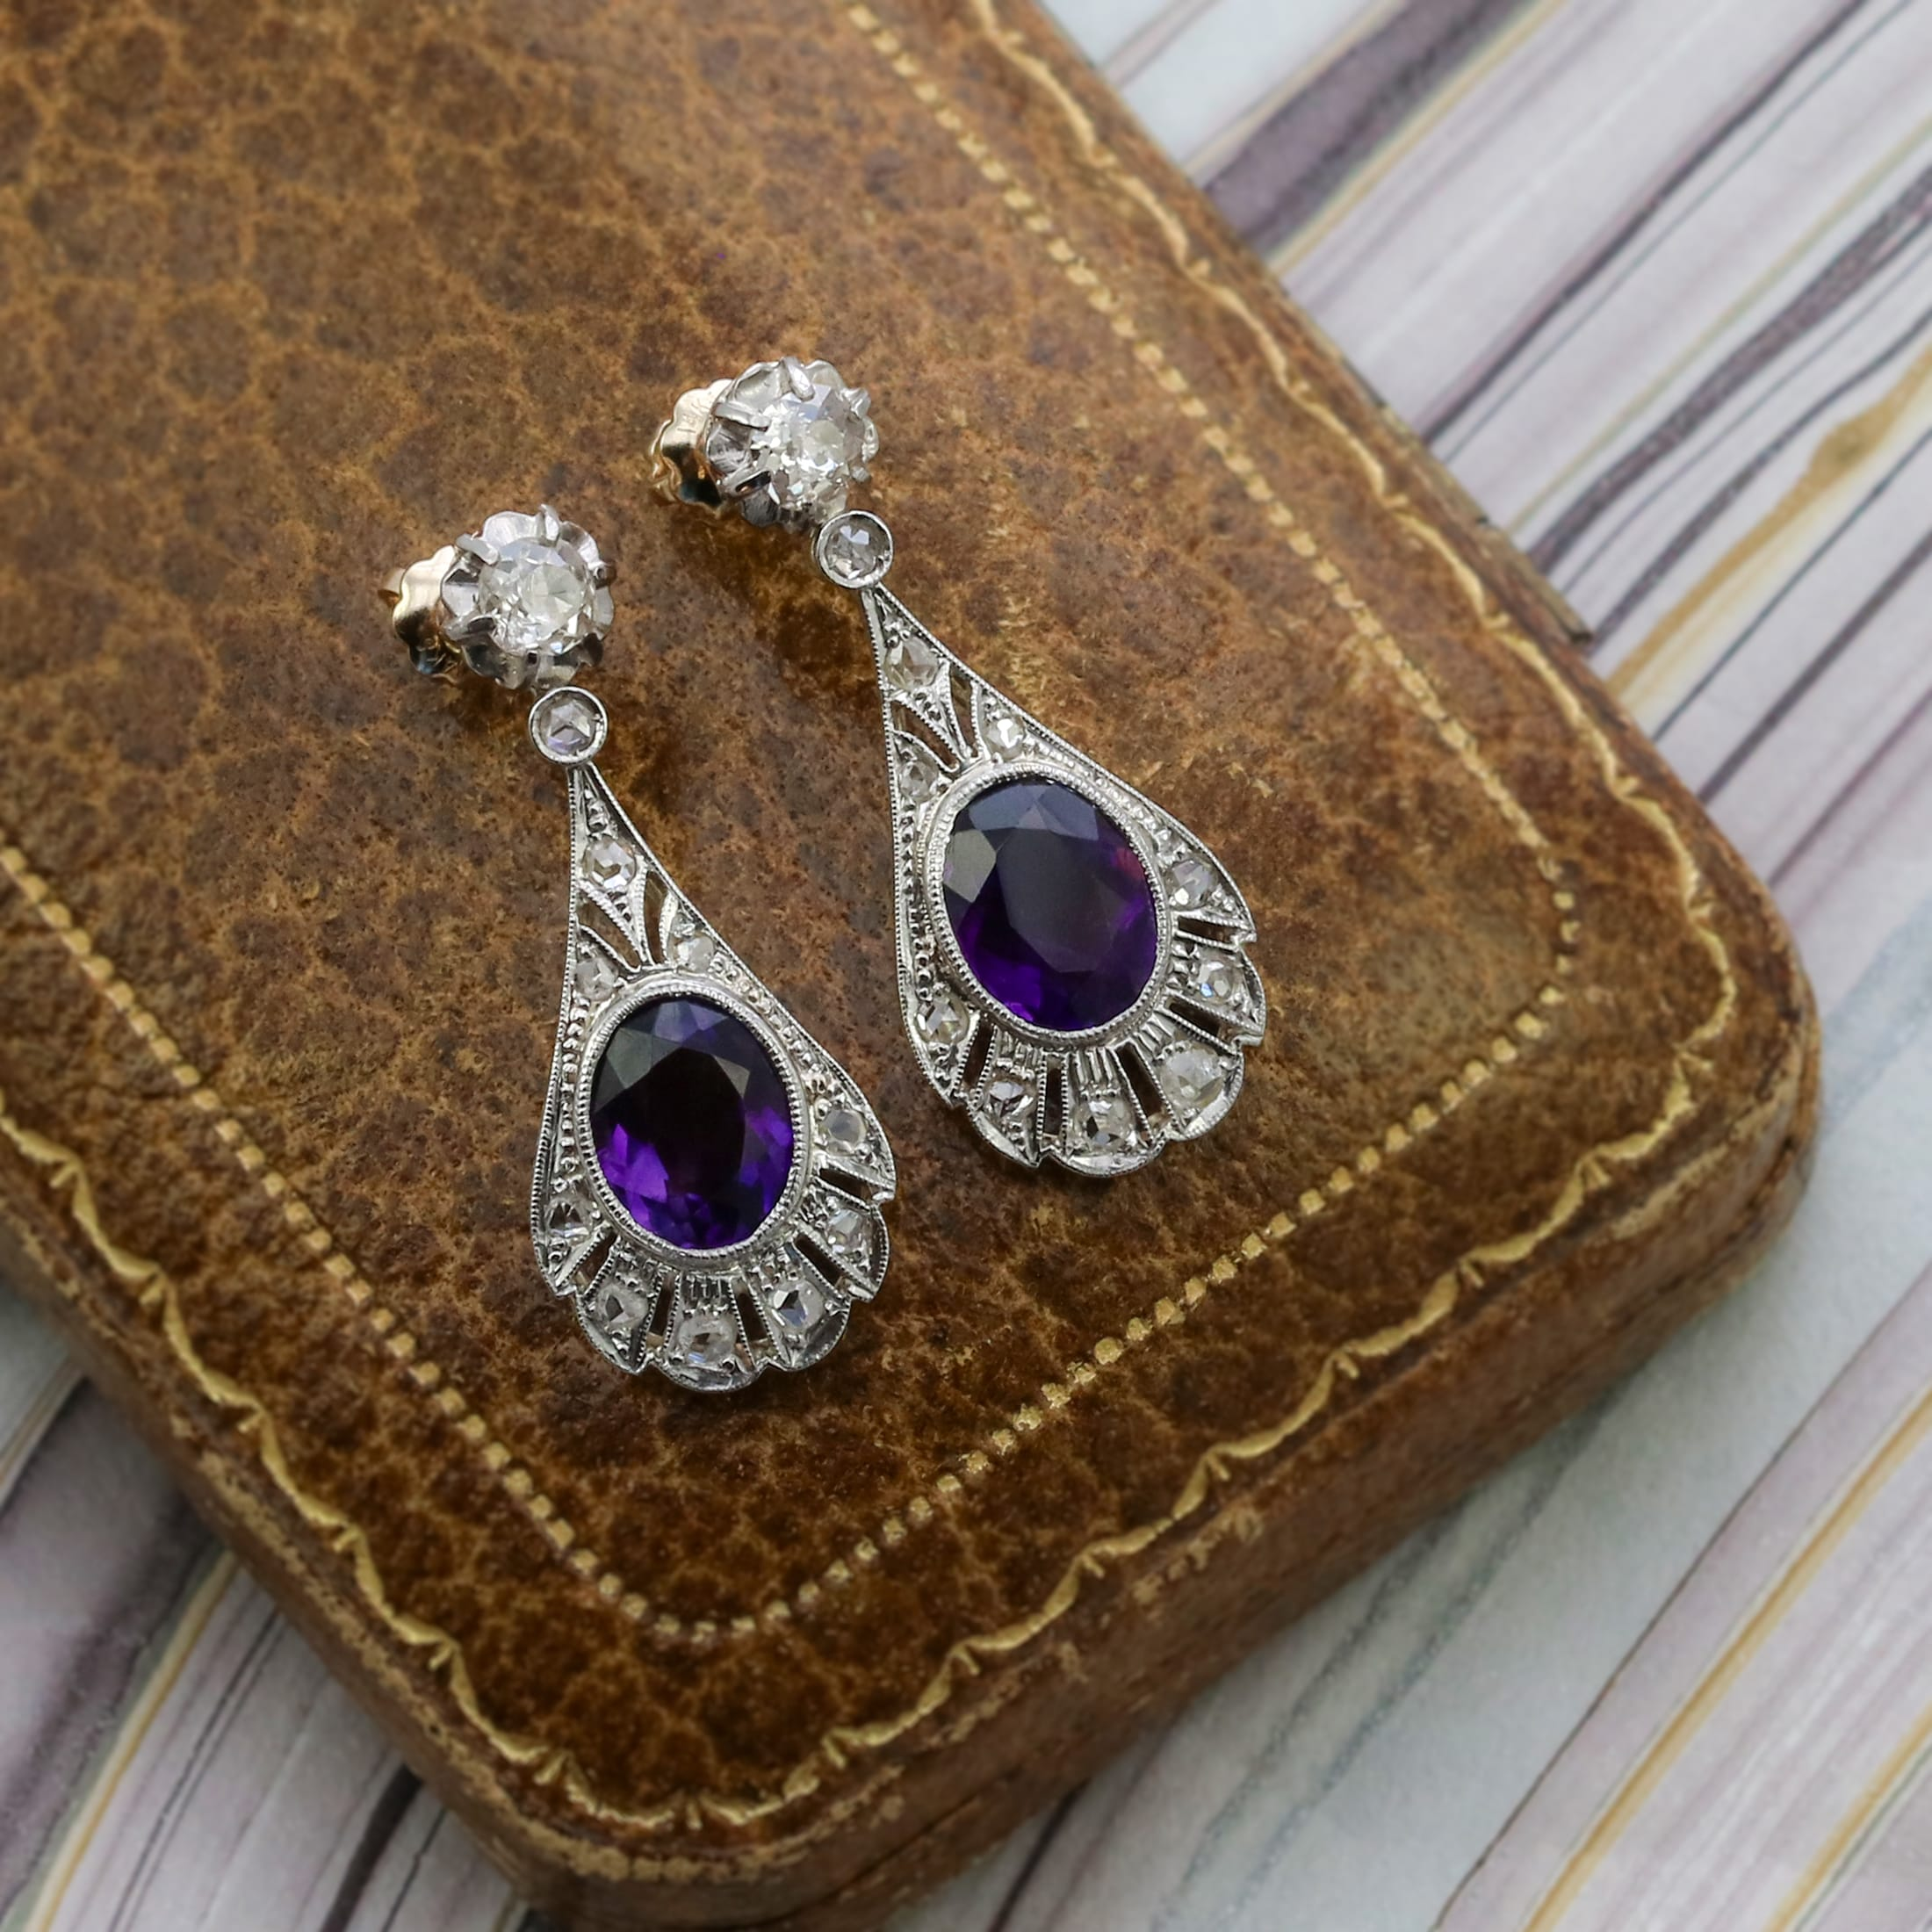 Edwardian diamond and amethyst drop earrings.